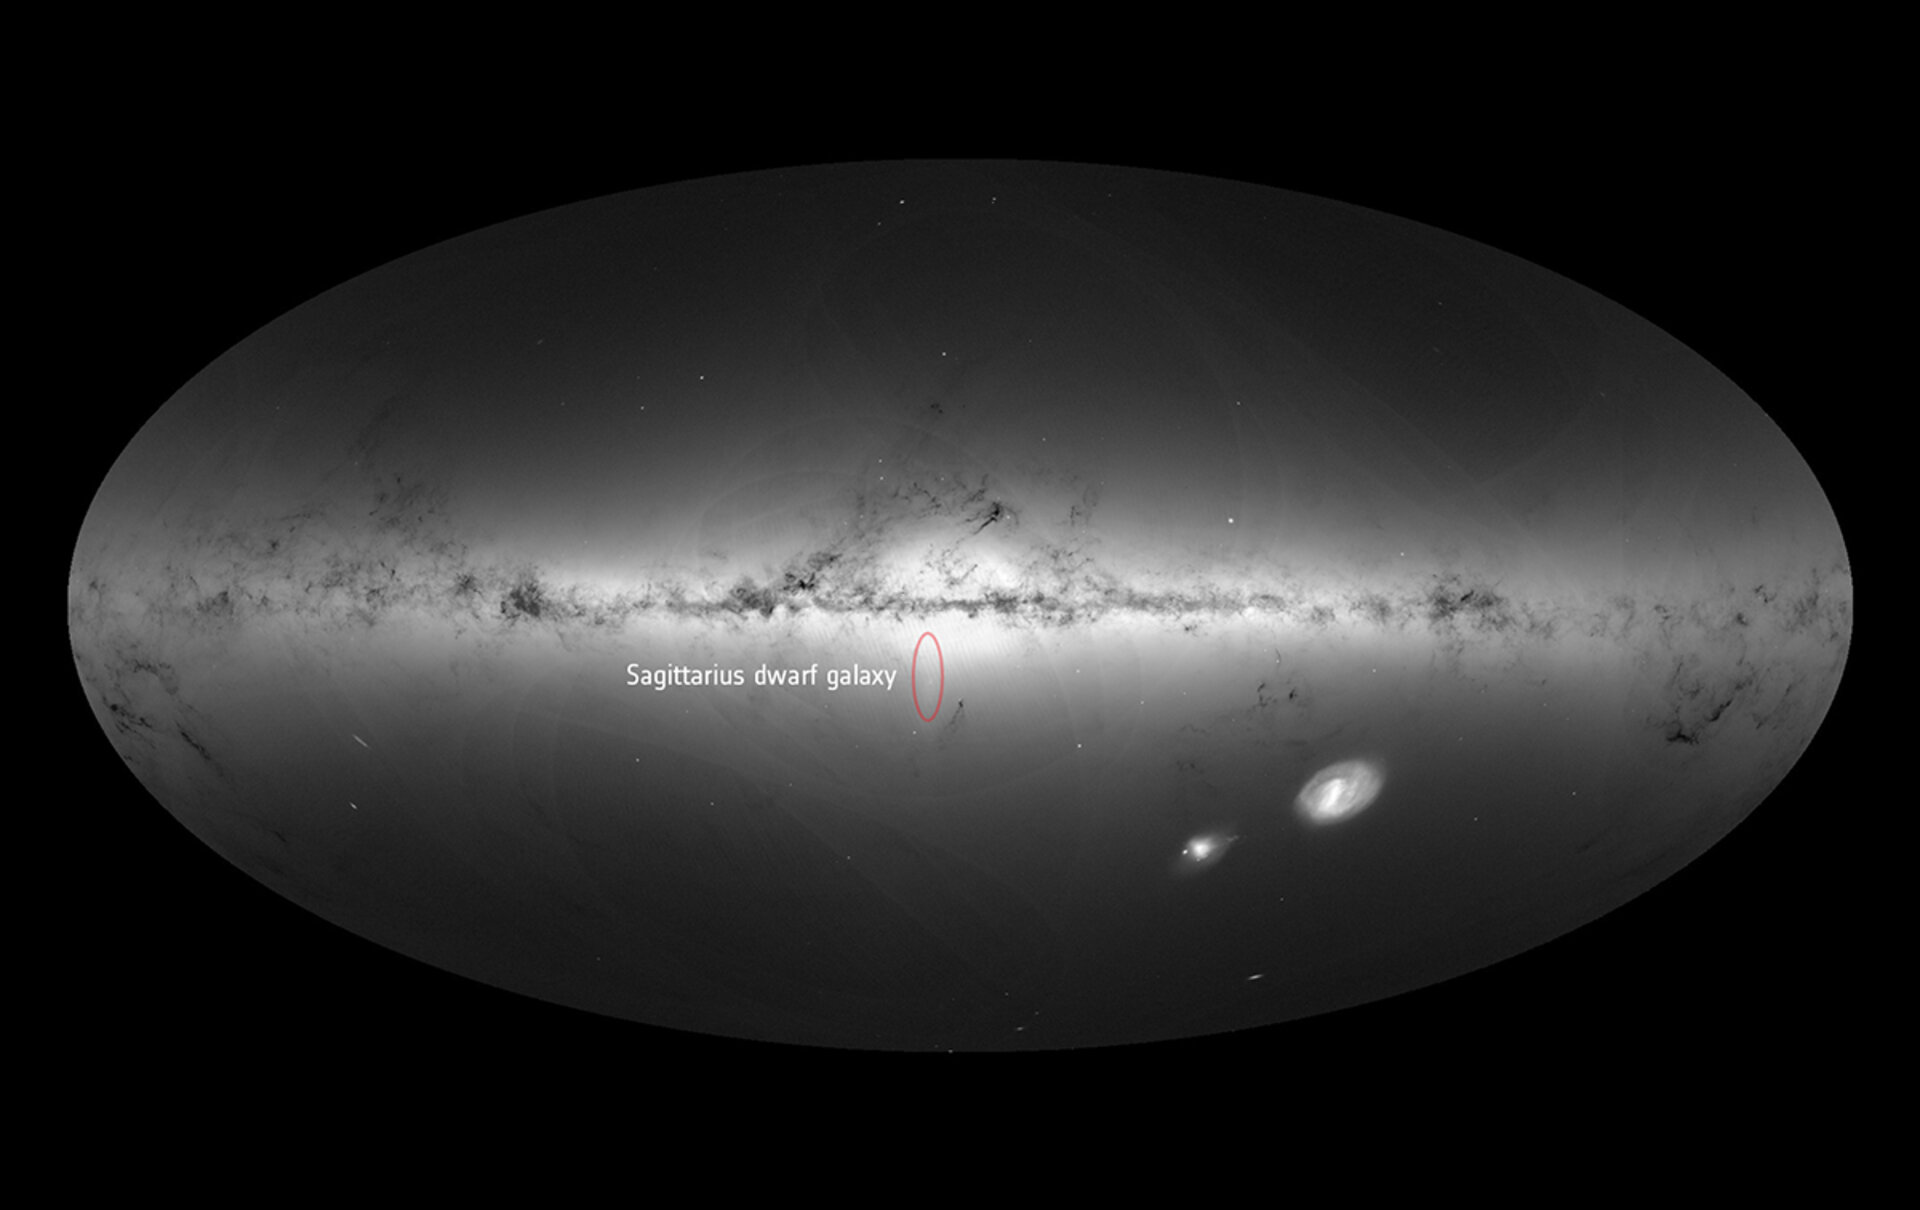 The Sagittarius dwarf galaxy in Gaia's all-sky view